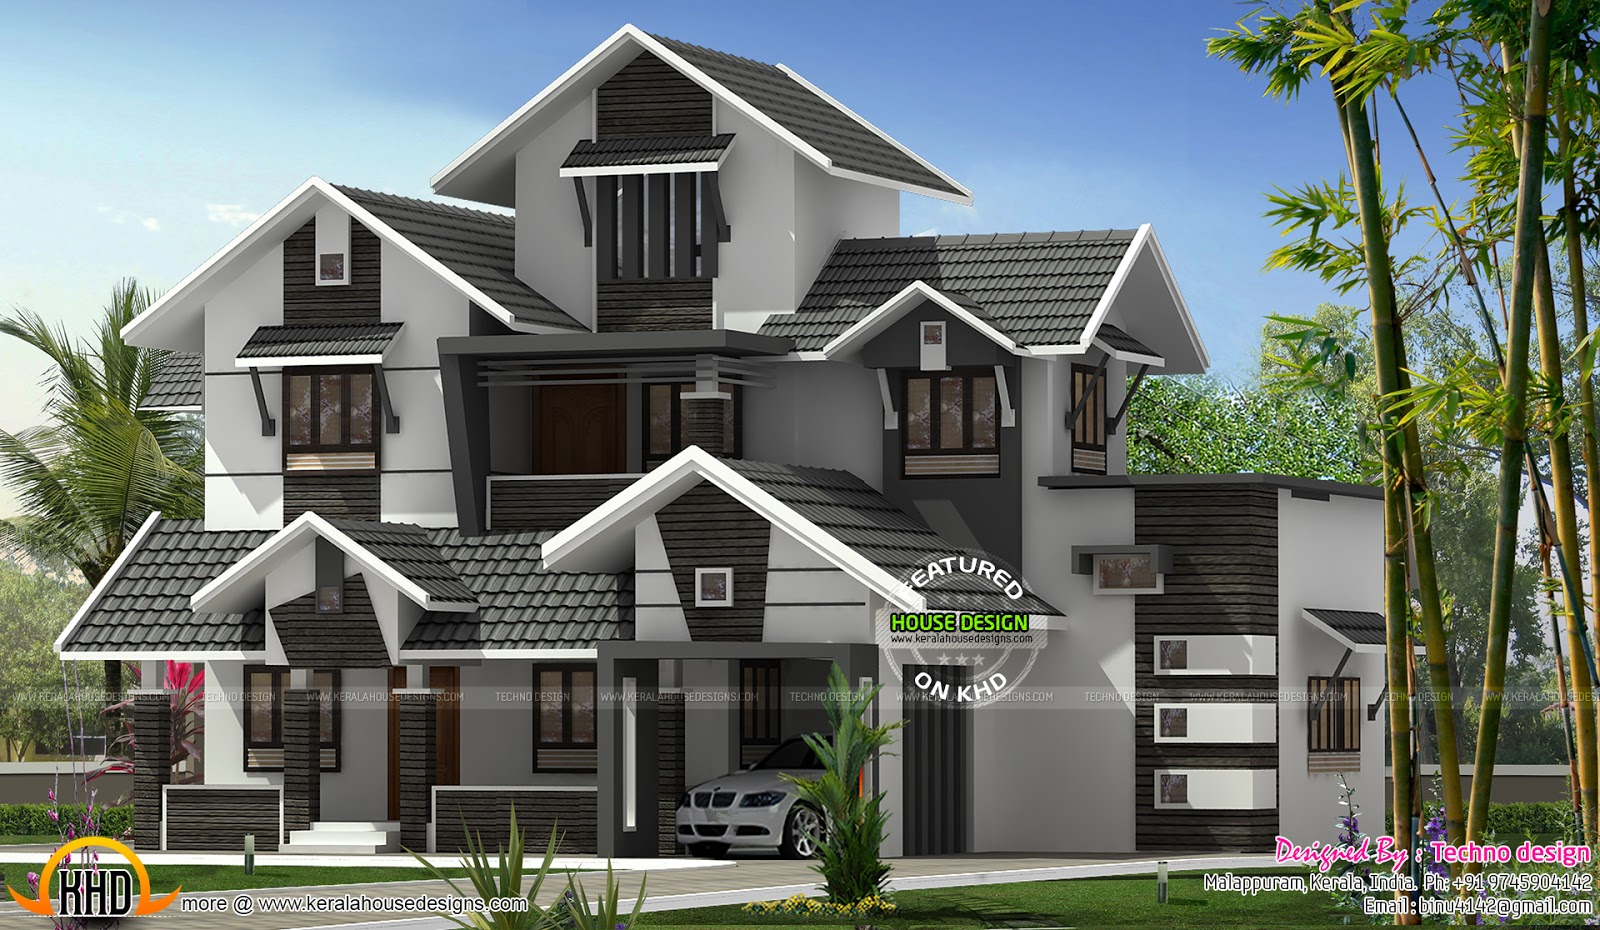 Modern kerala home design kerala home design and floor plans for Kerala home designs contemporary